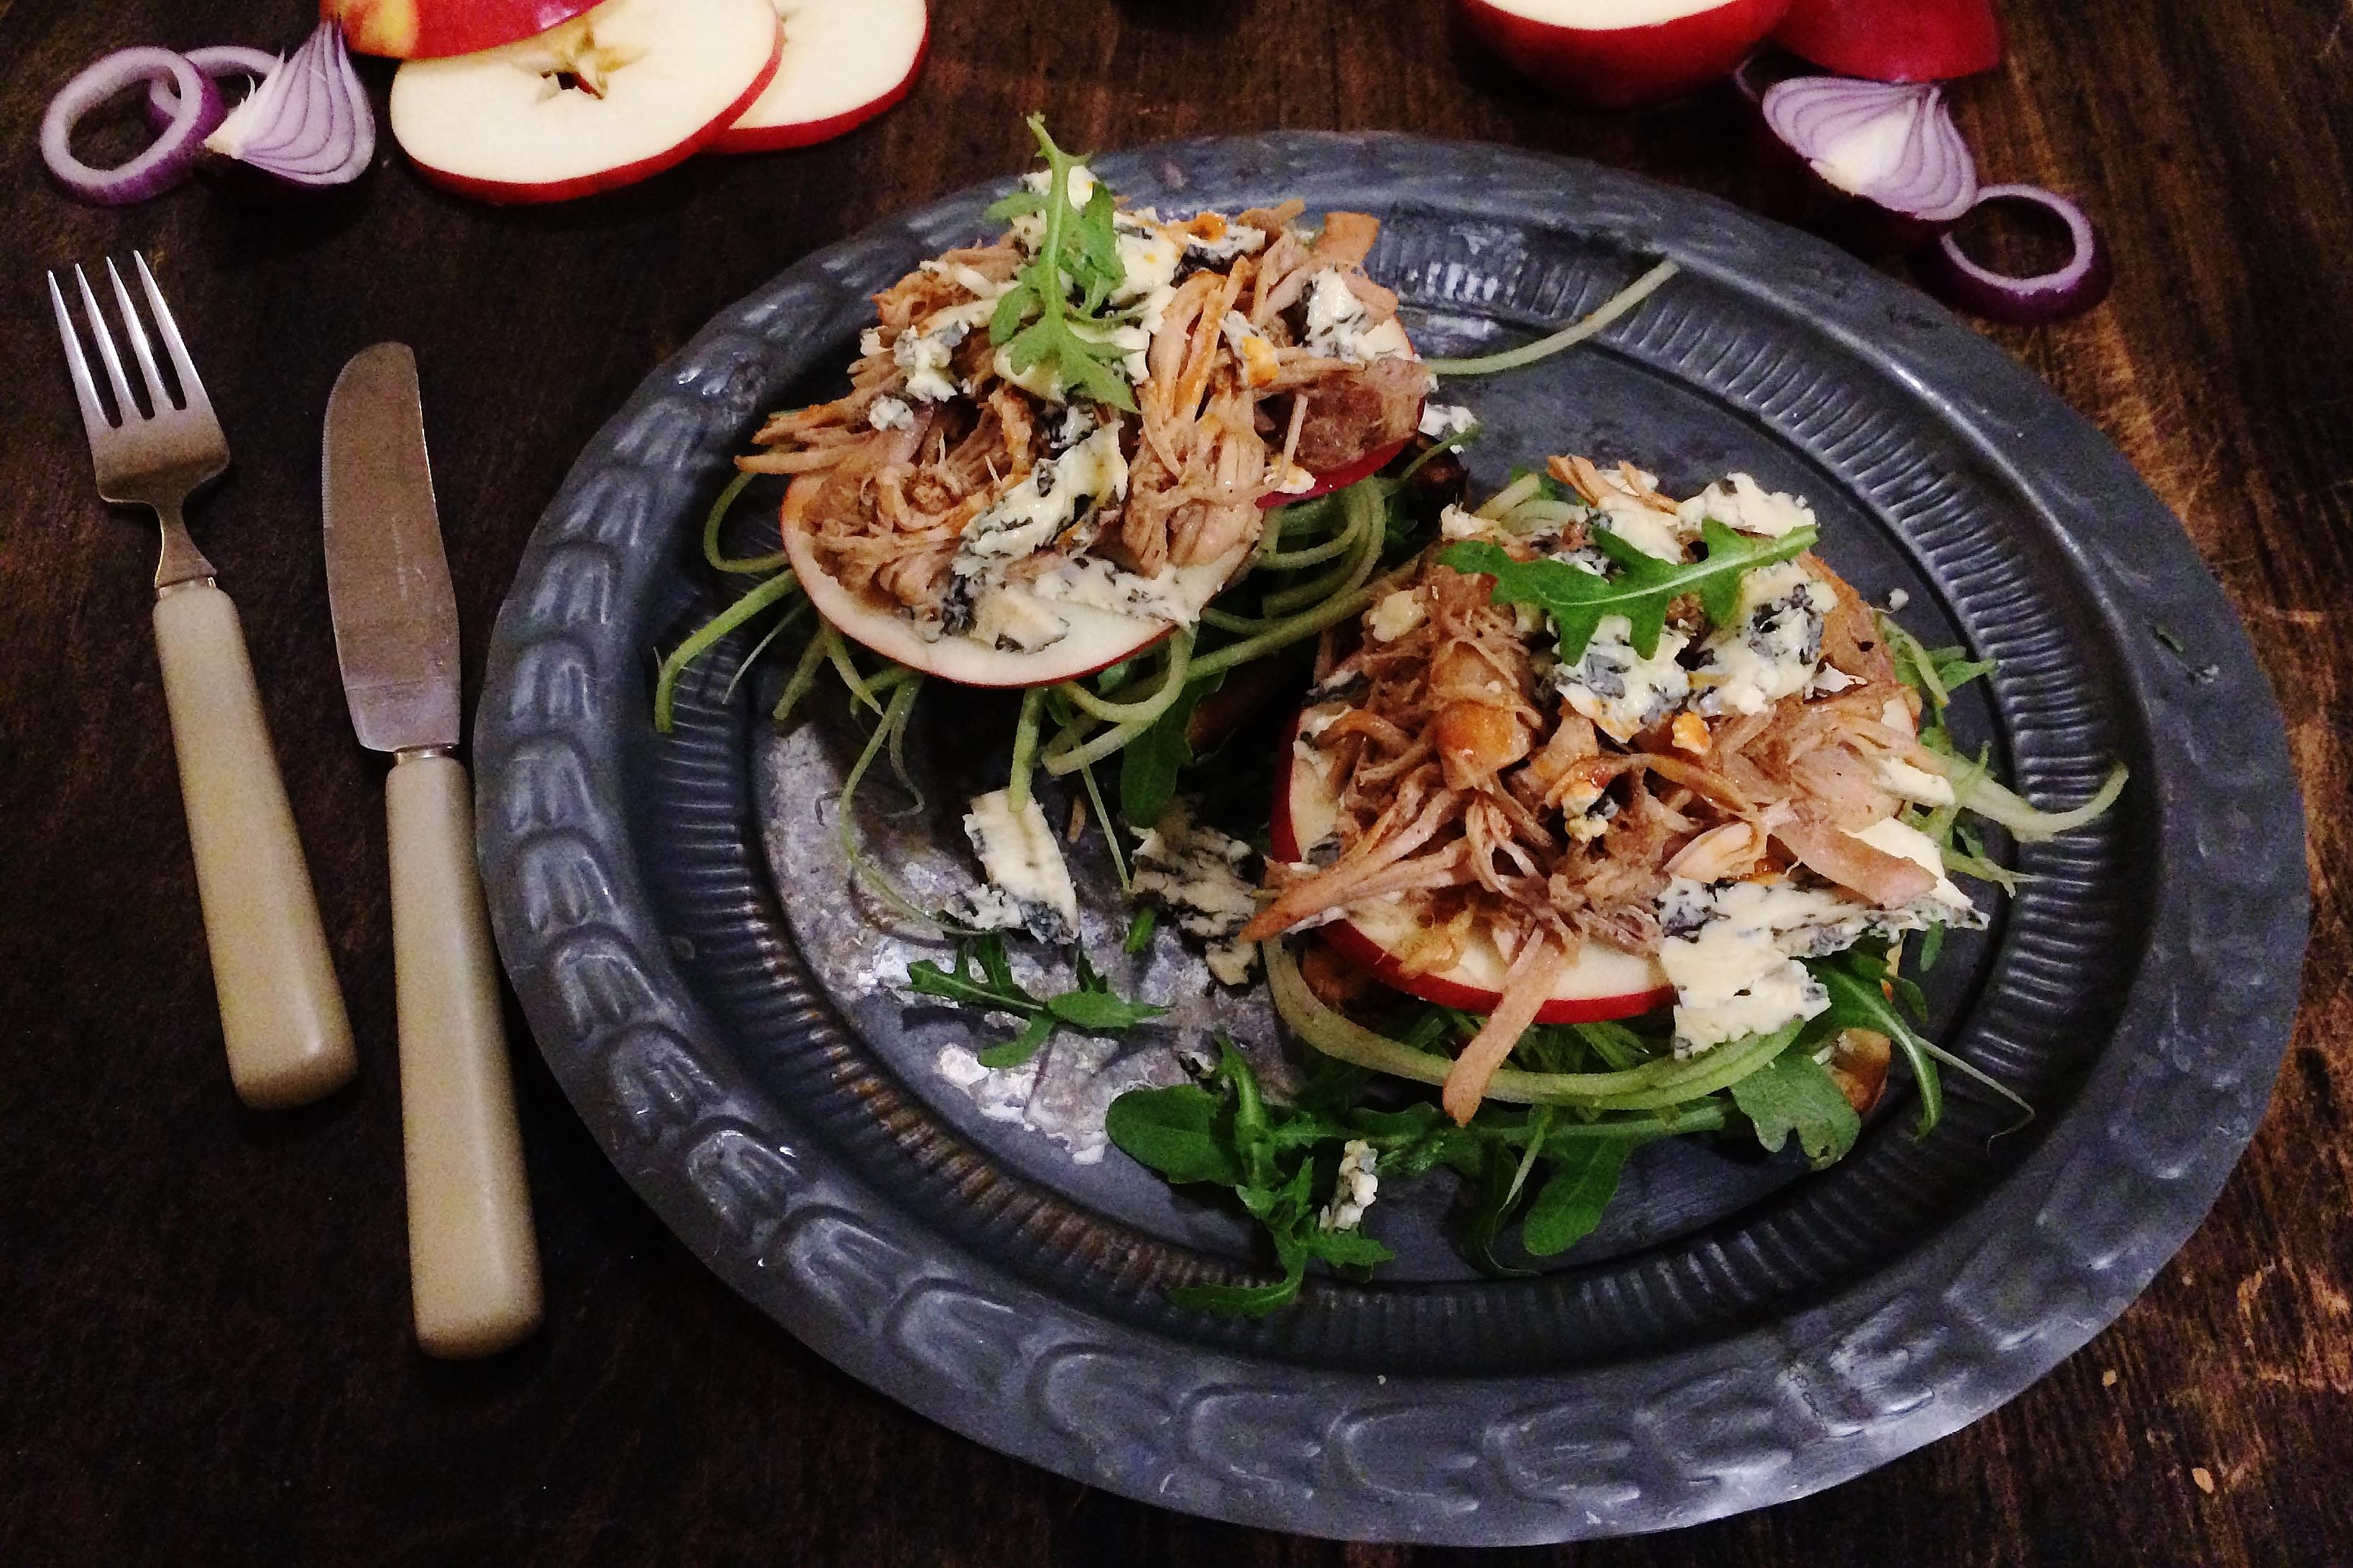 Pulled Pork Sandwich with Blue Cheese & Apple